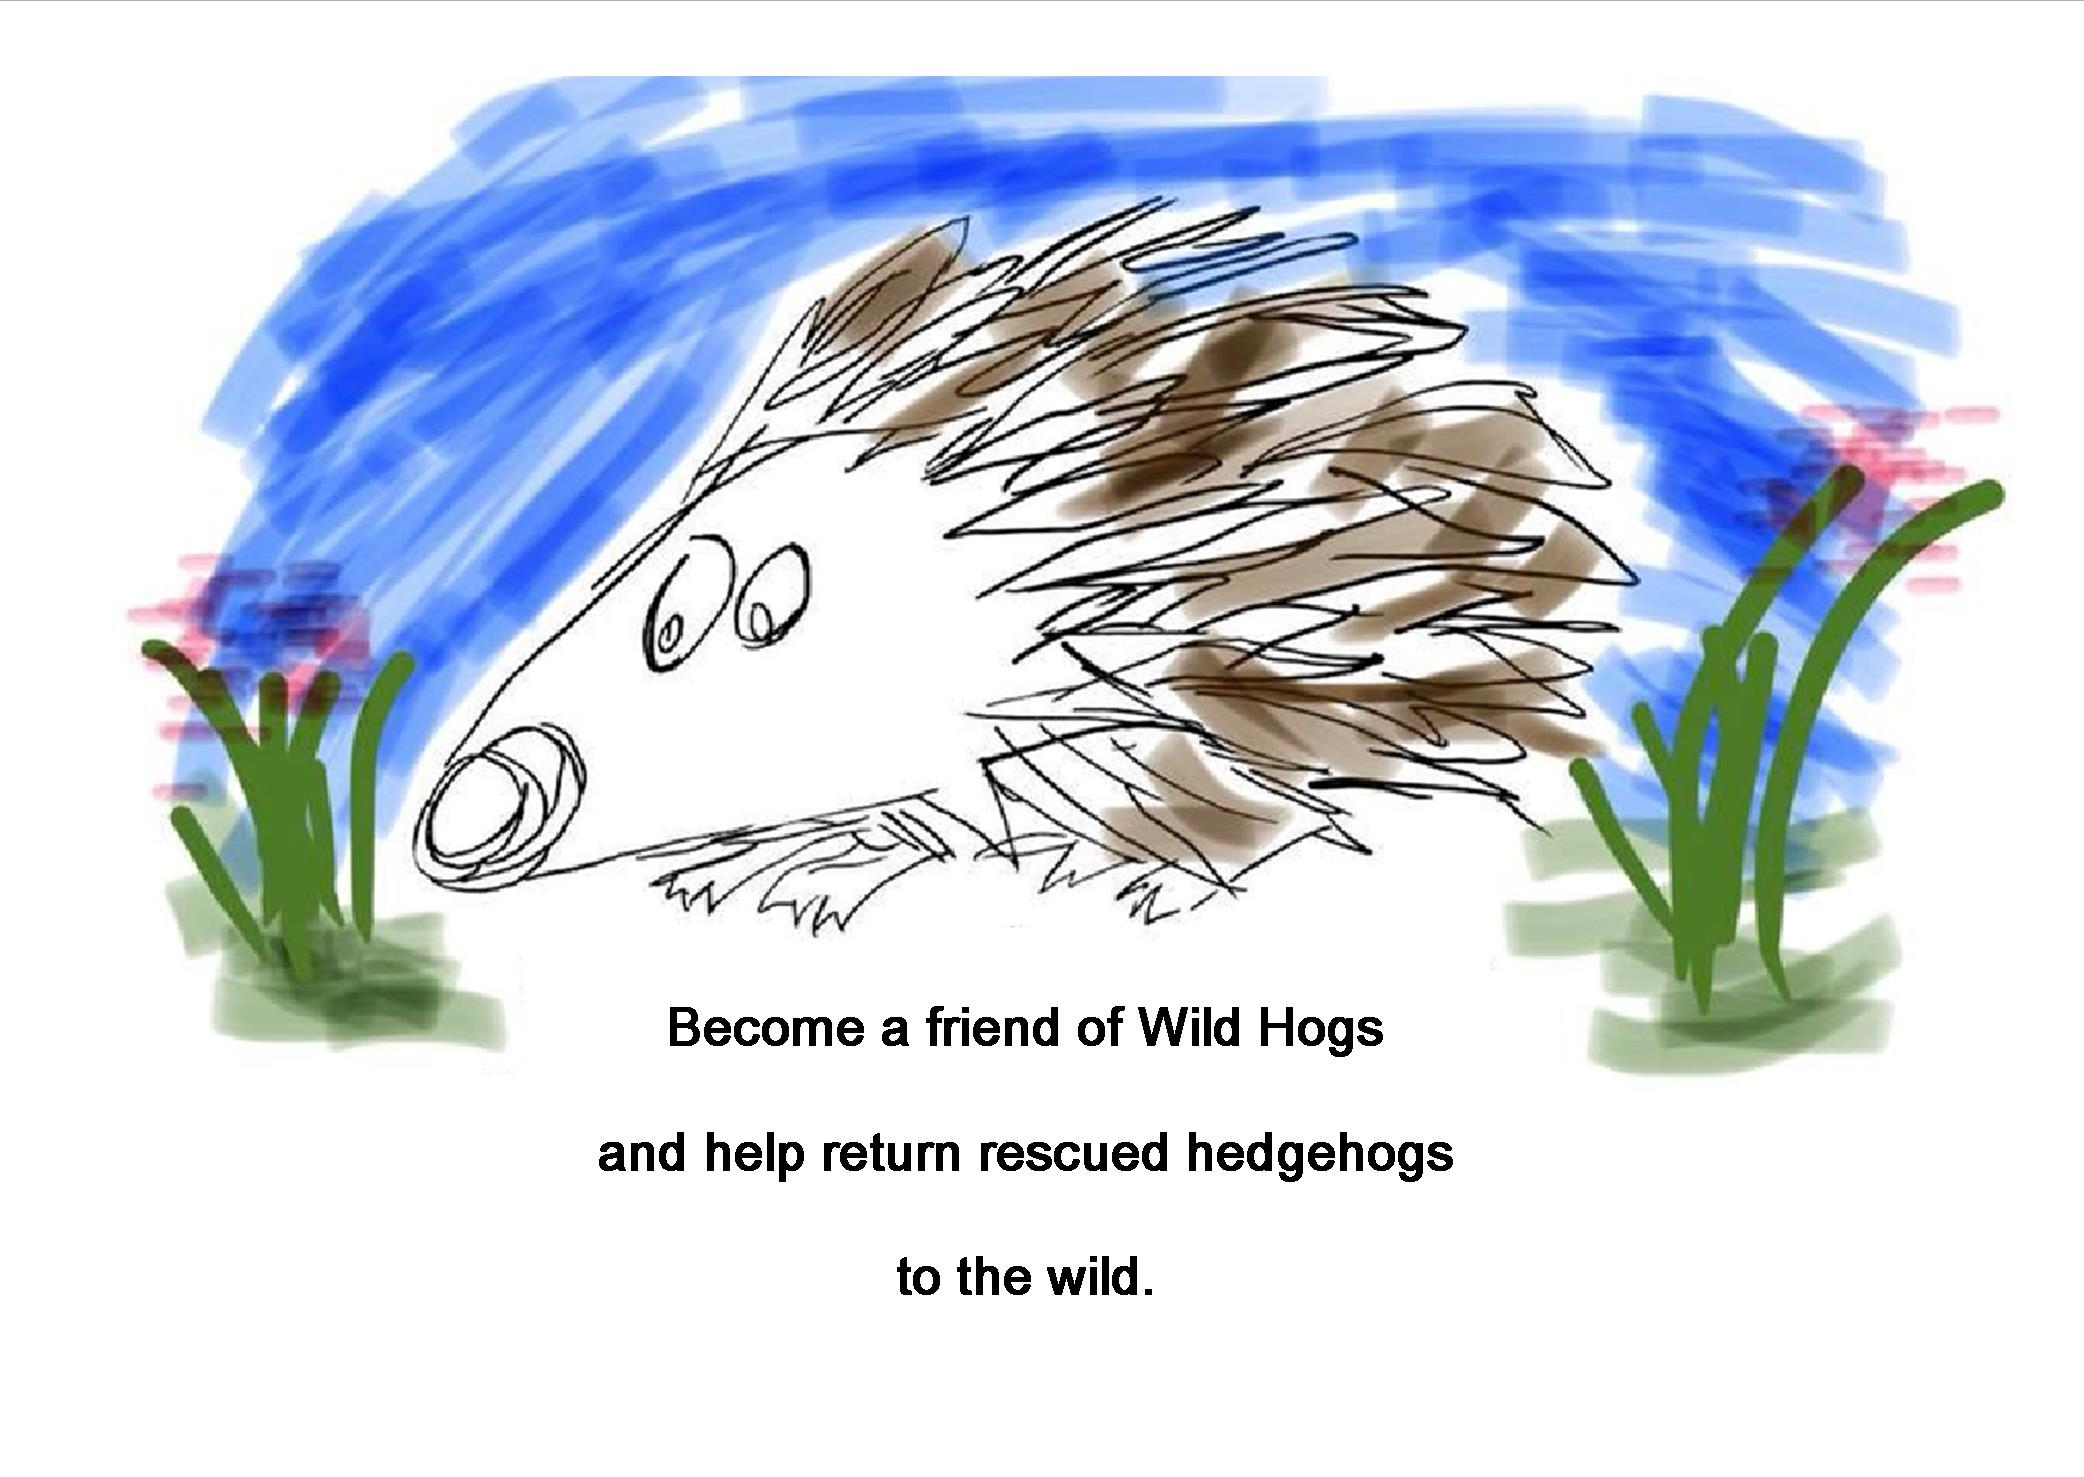 Join as a Friend of Wild Hogs